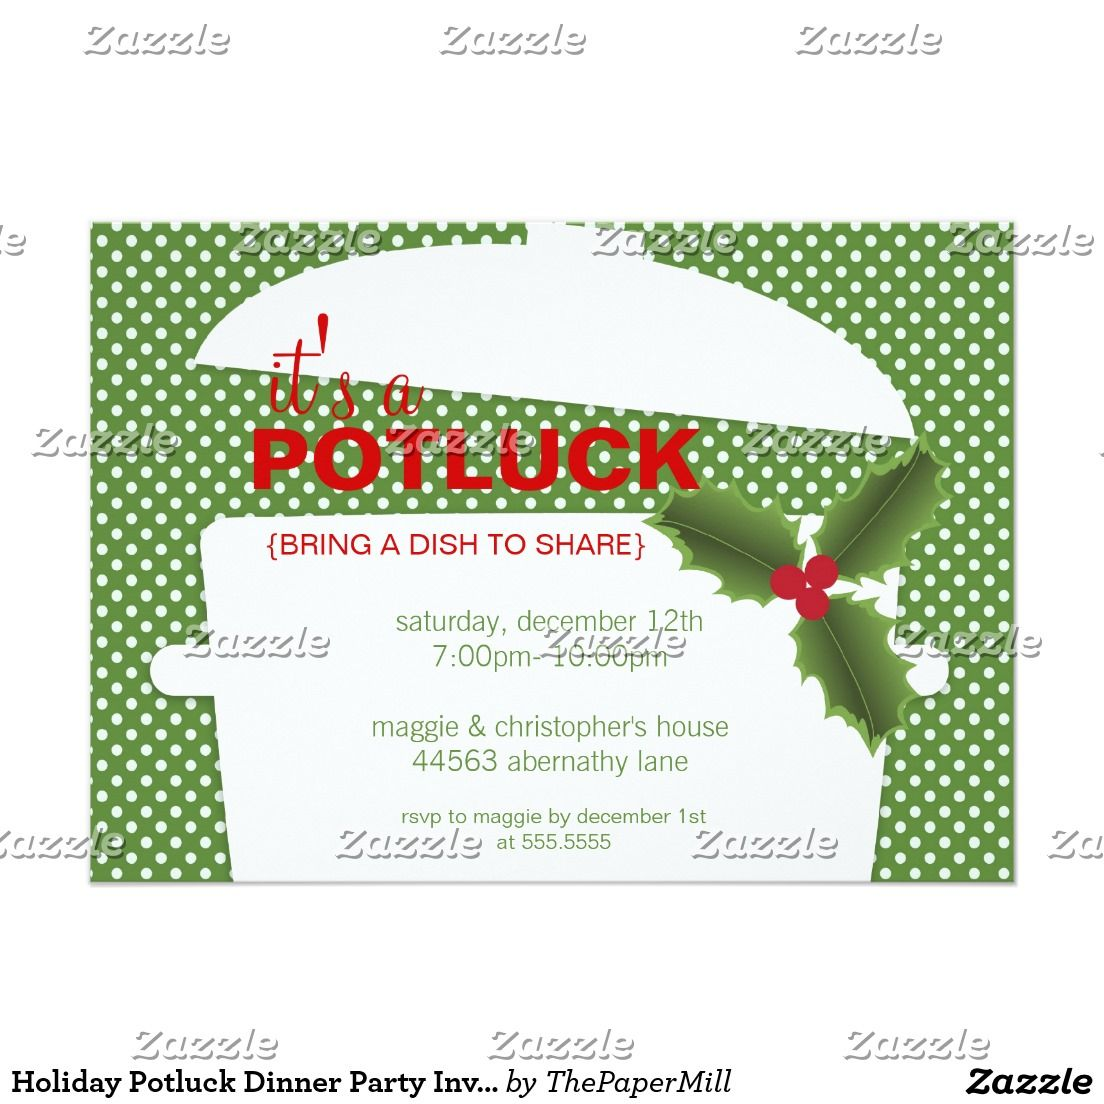 Holiday Potluck Dinner Party Invitations